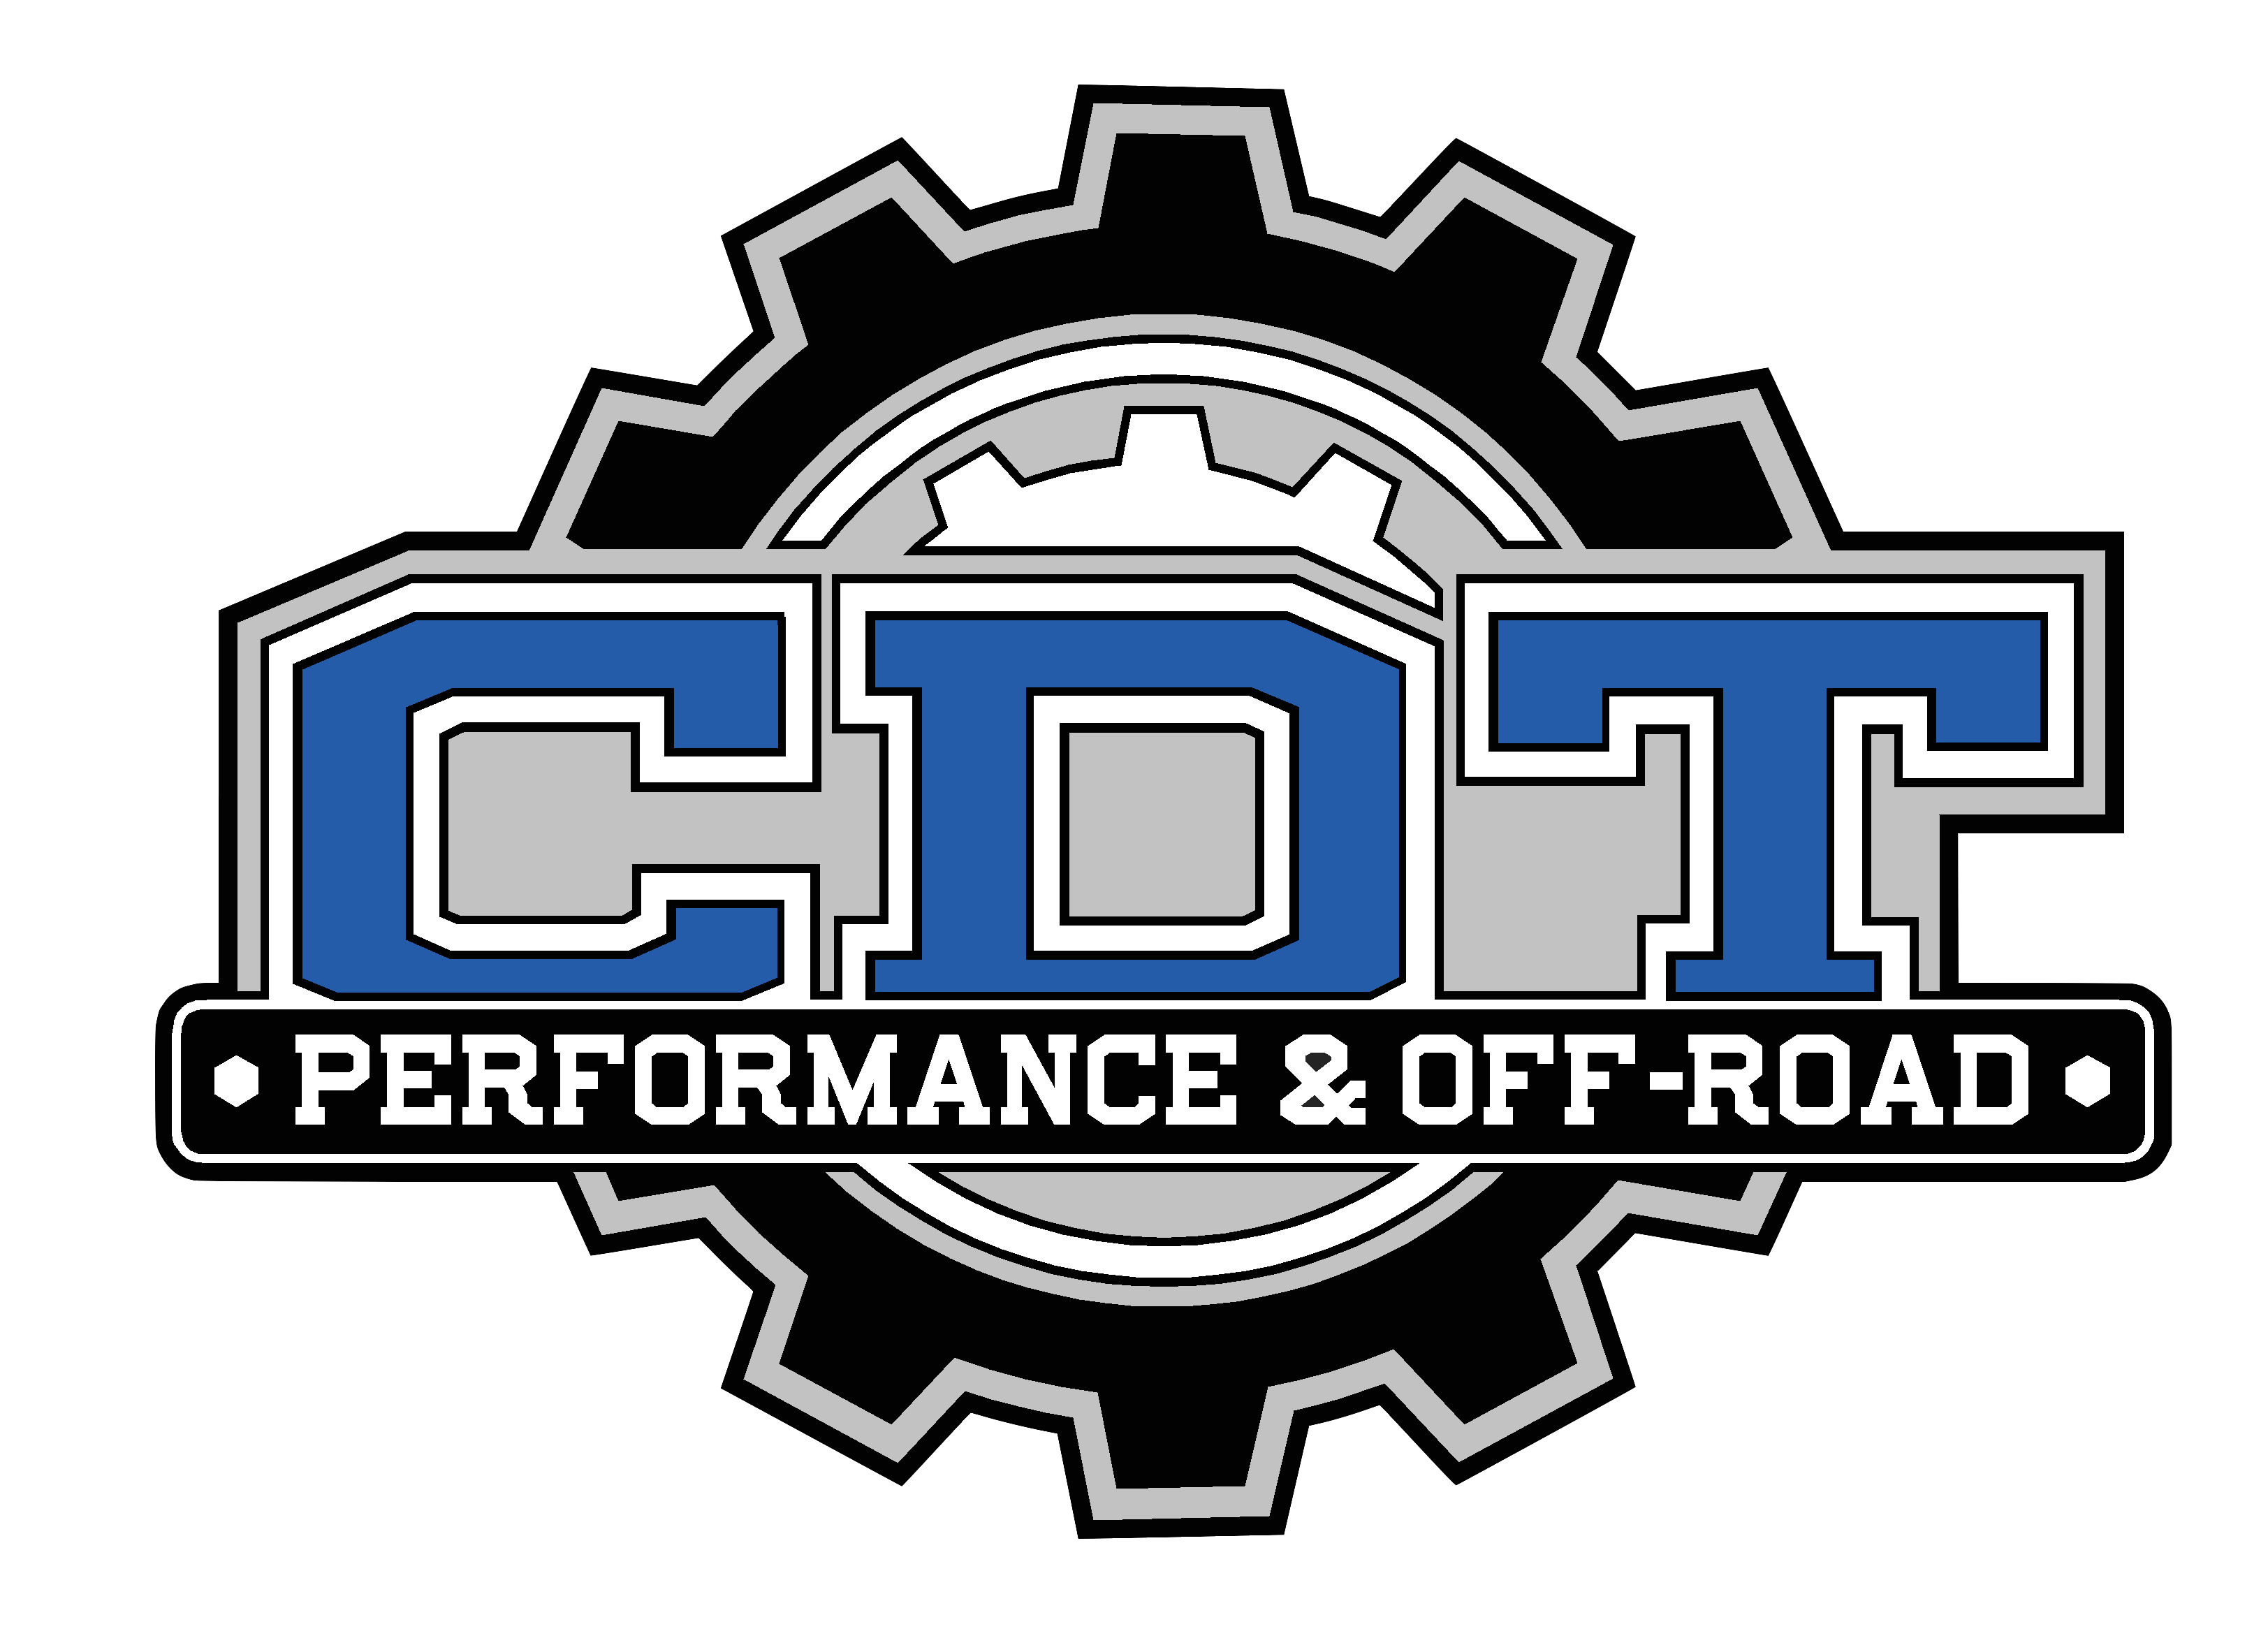 CDT Performance & Off-Road